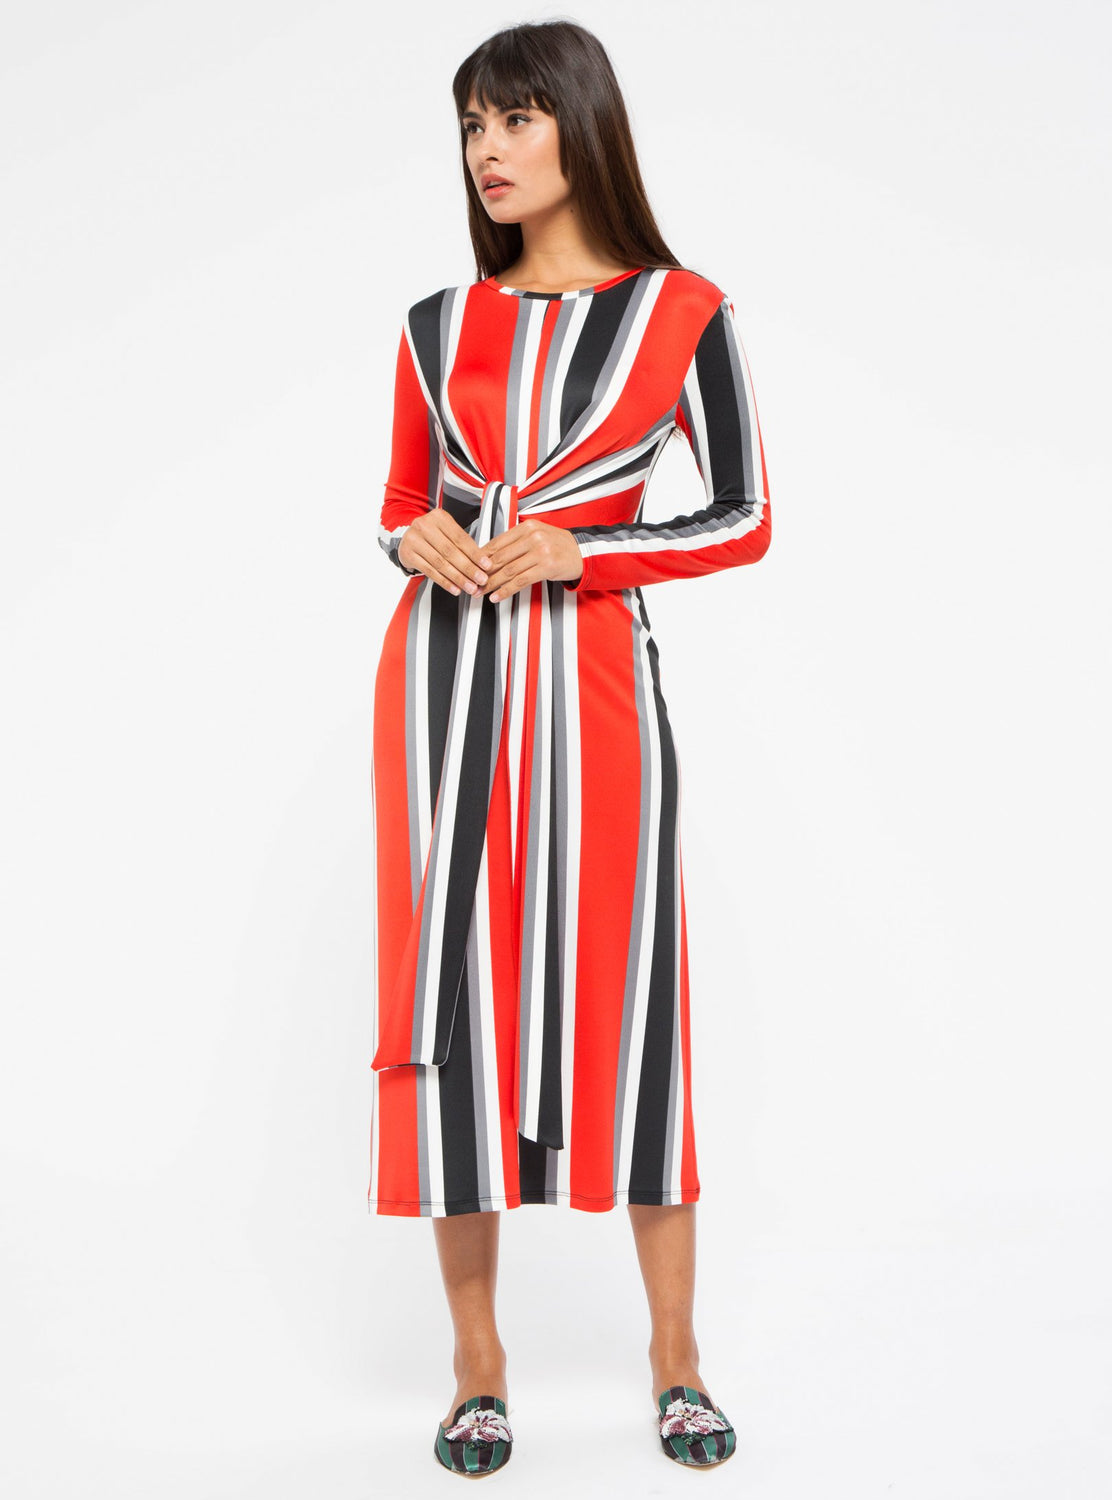 STORE WF Red Tie Front Stripe Midi Dress Modest Midi Dress with Long Sleeves and Tie Front